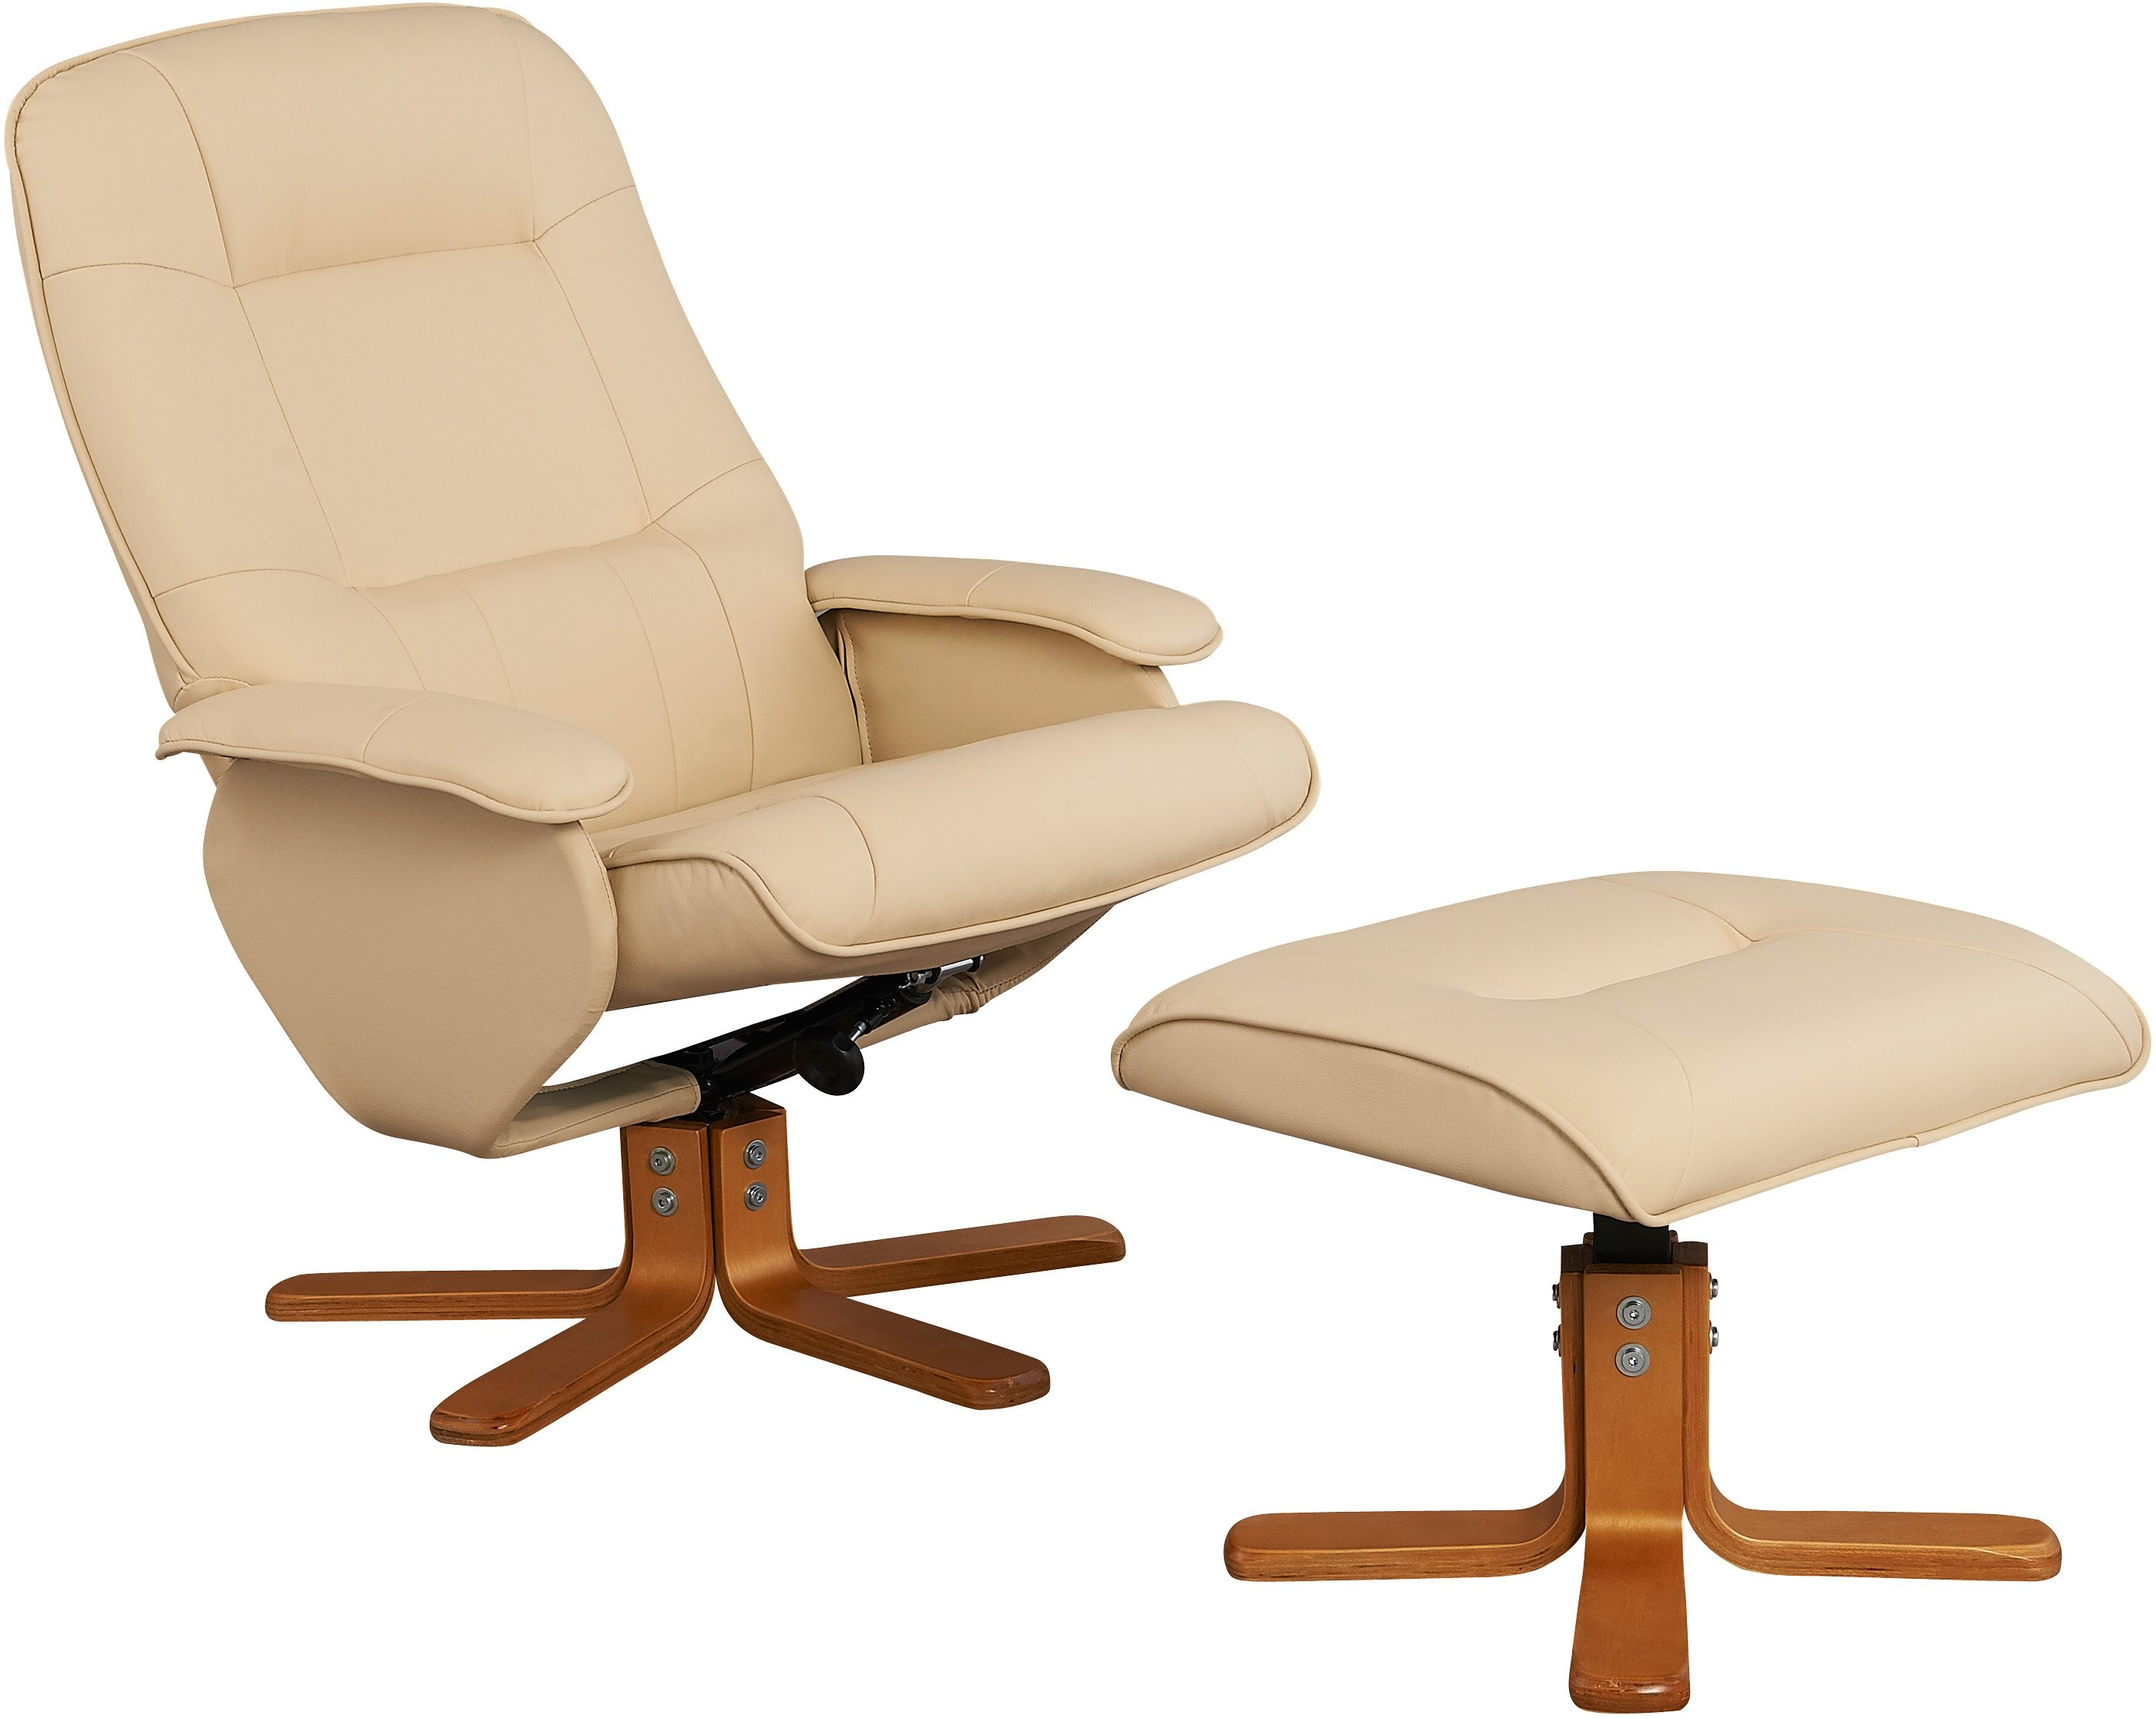 Relaxsessel Ohne Hocker Home Affaire Relaxfauteuil And Hocker Nice In De Online